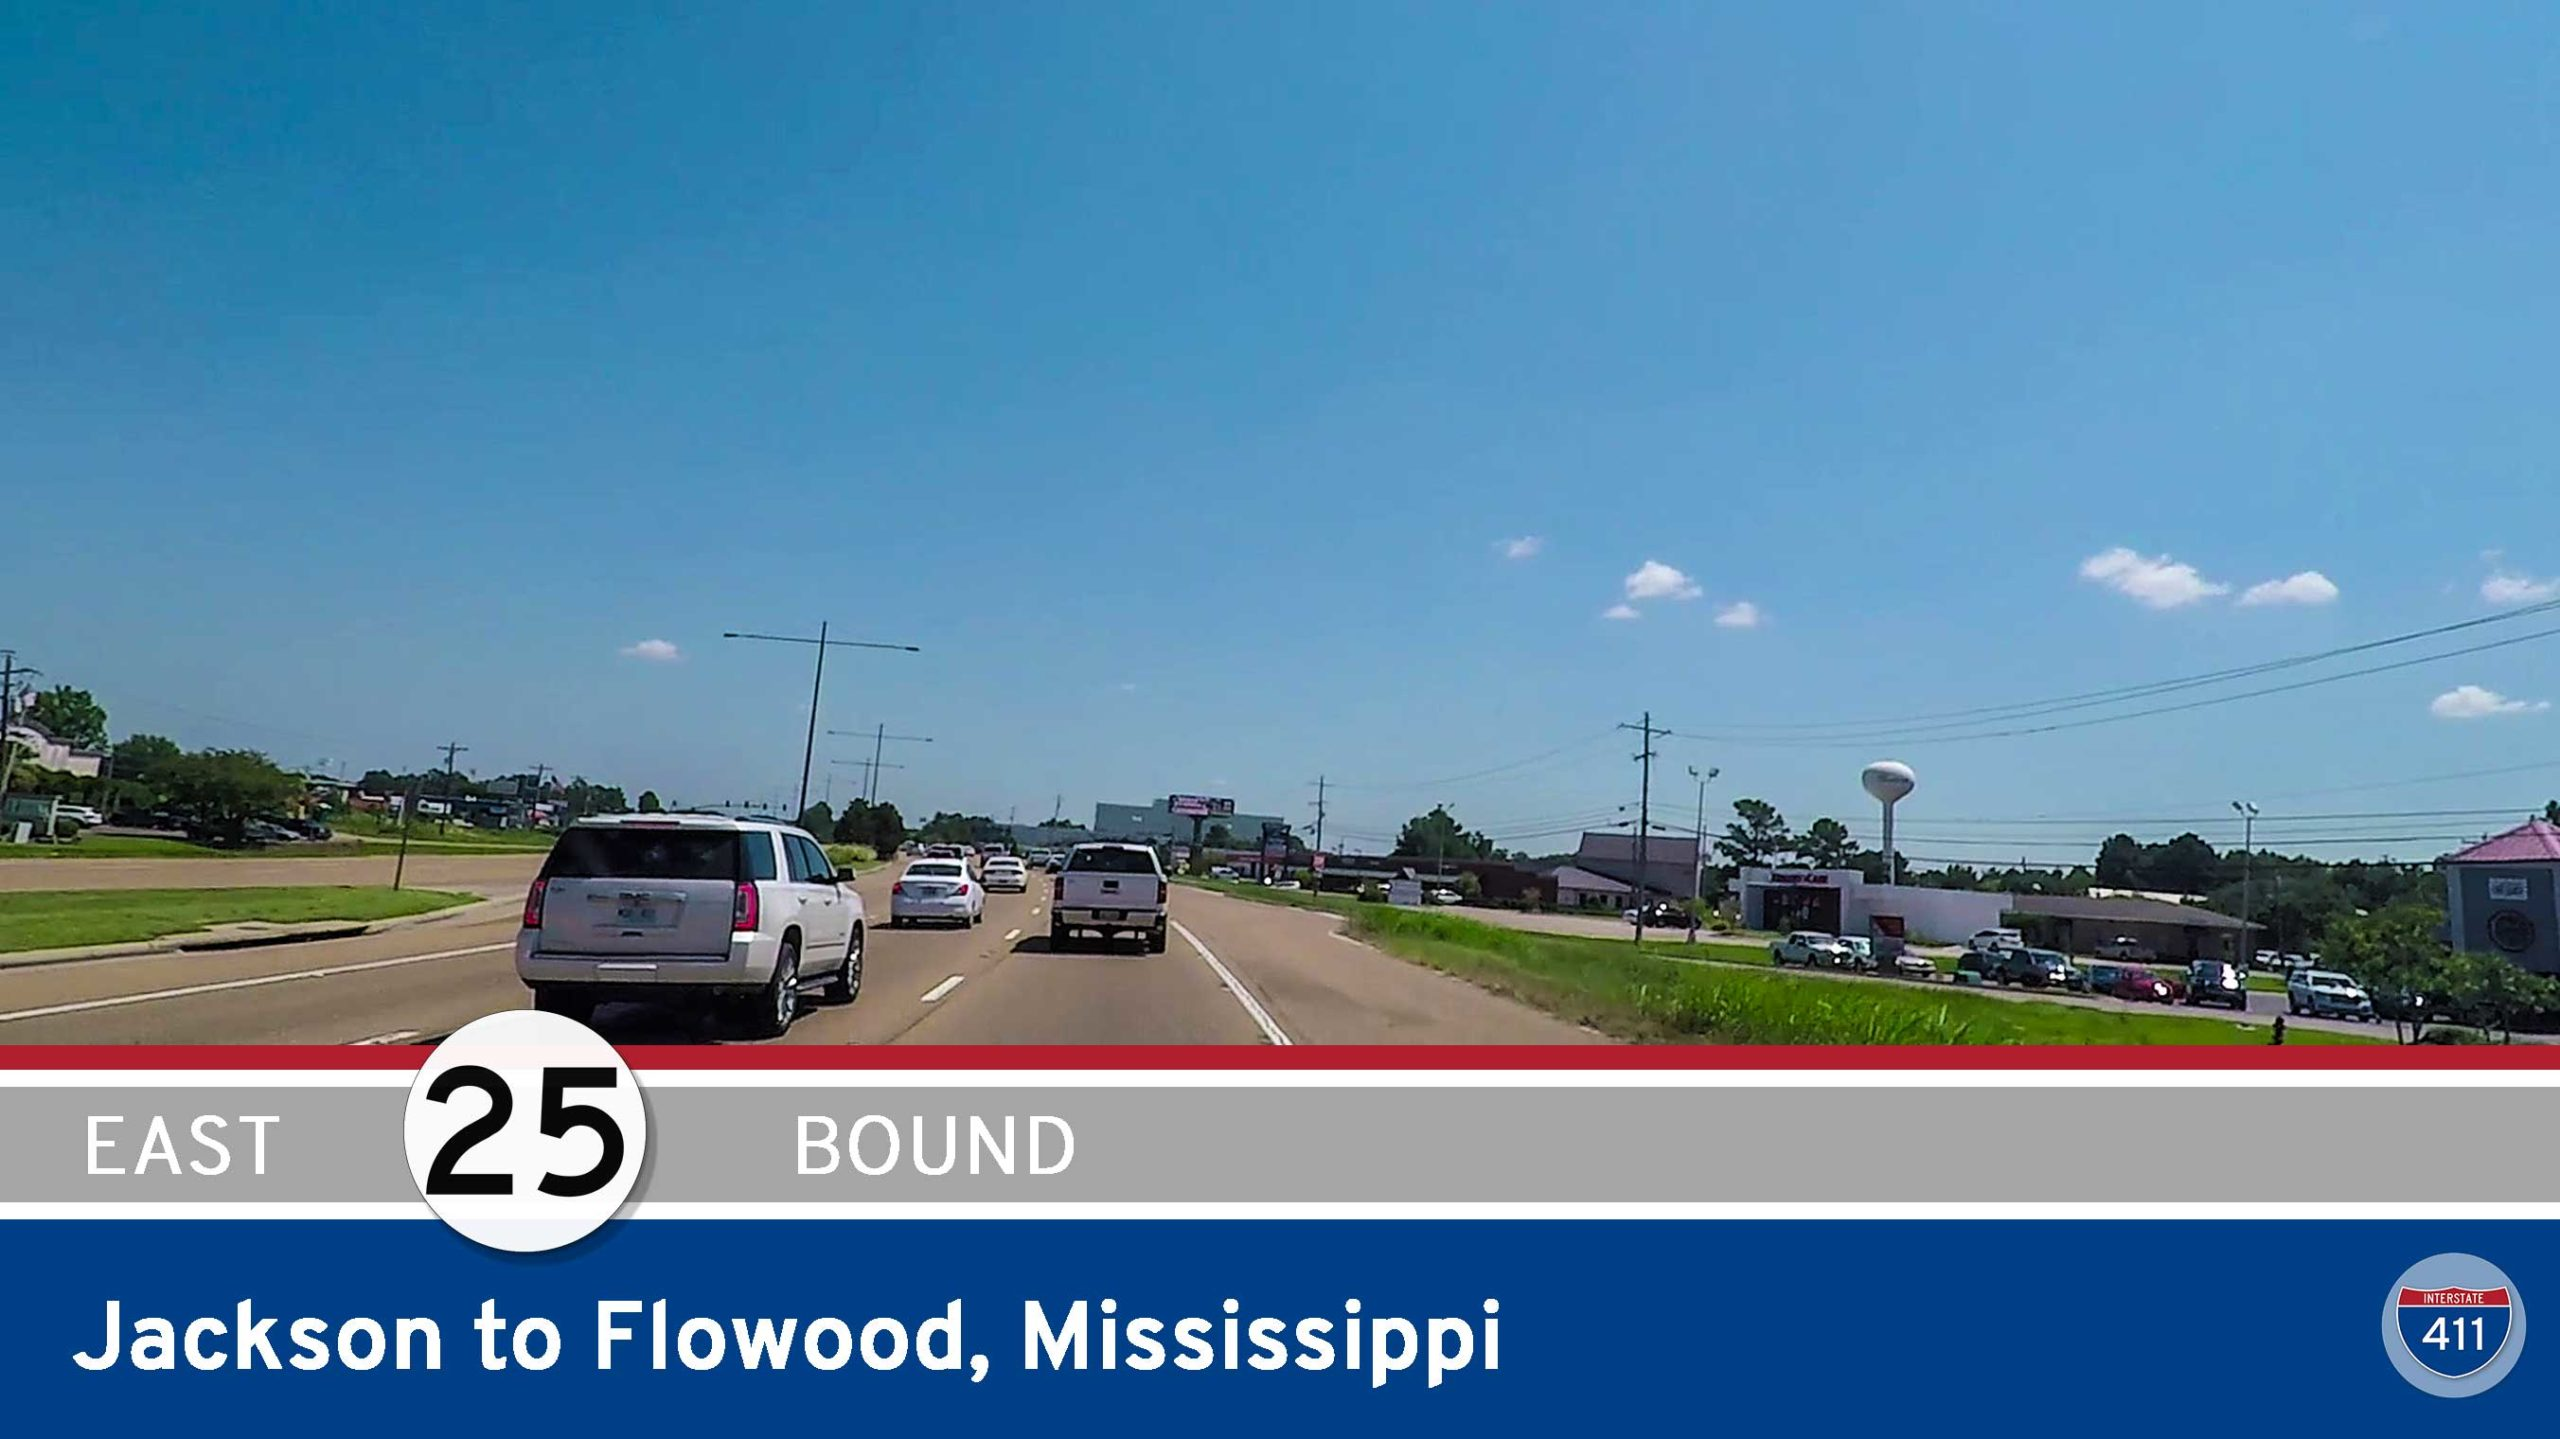 Drive America's Highways for 3.5 miles east along Mississippi Highway 25 from Jackson to Flowood, Mississippi.